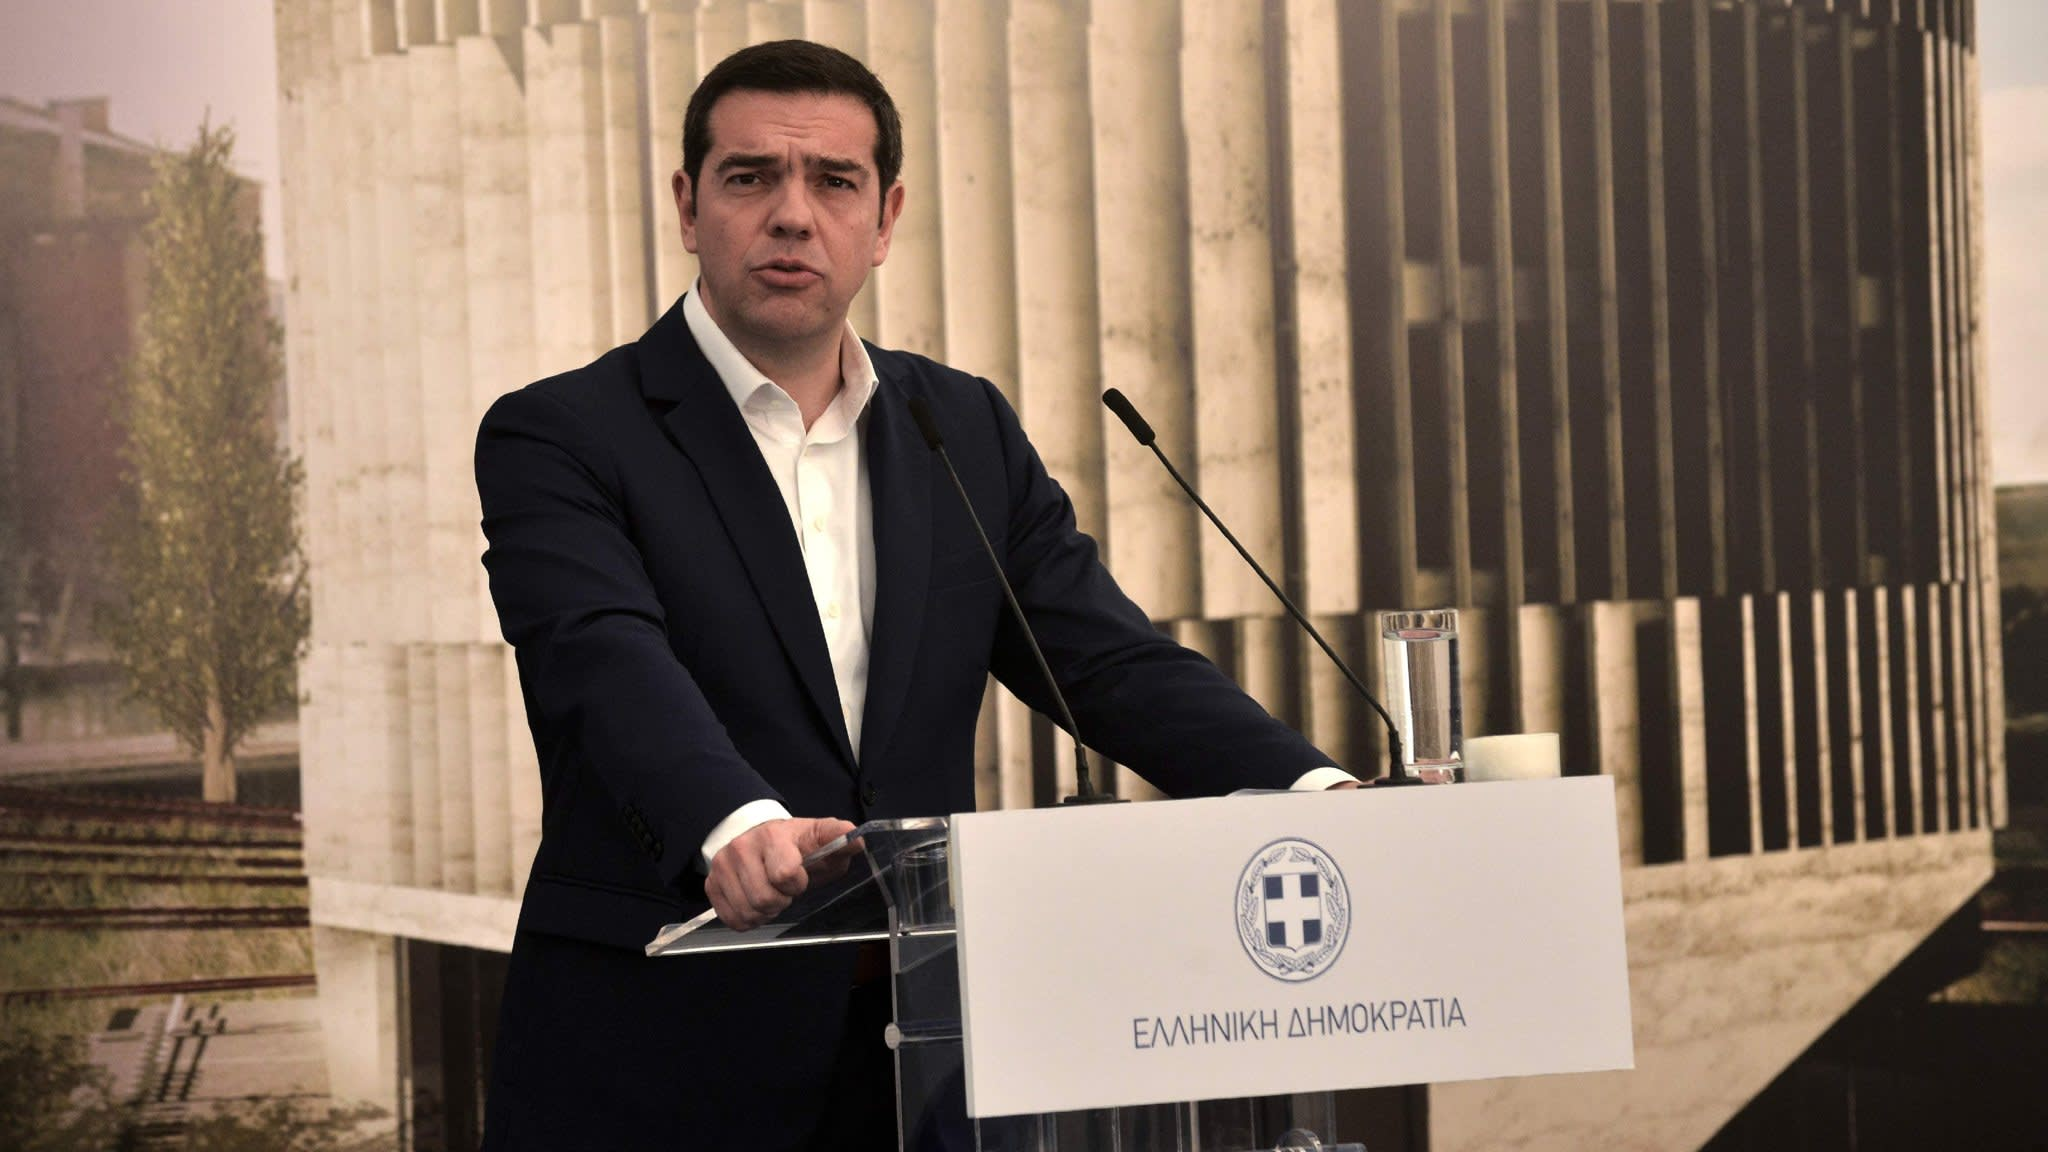 The Syriza party is undermining democracy in Greece